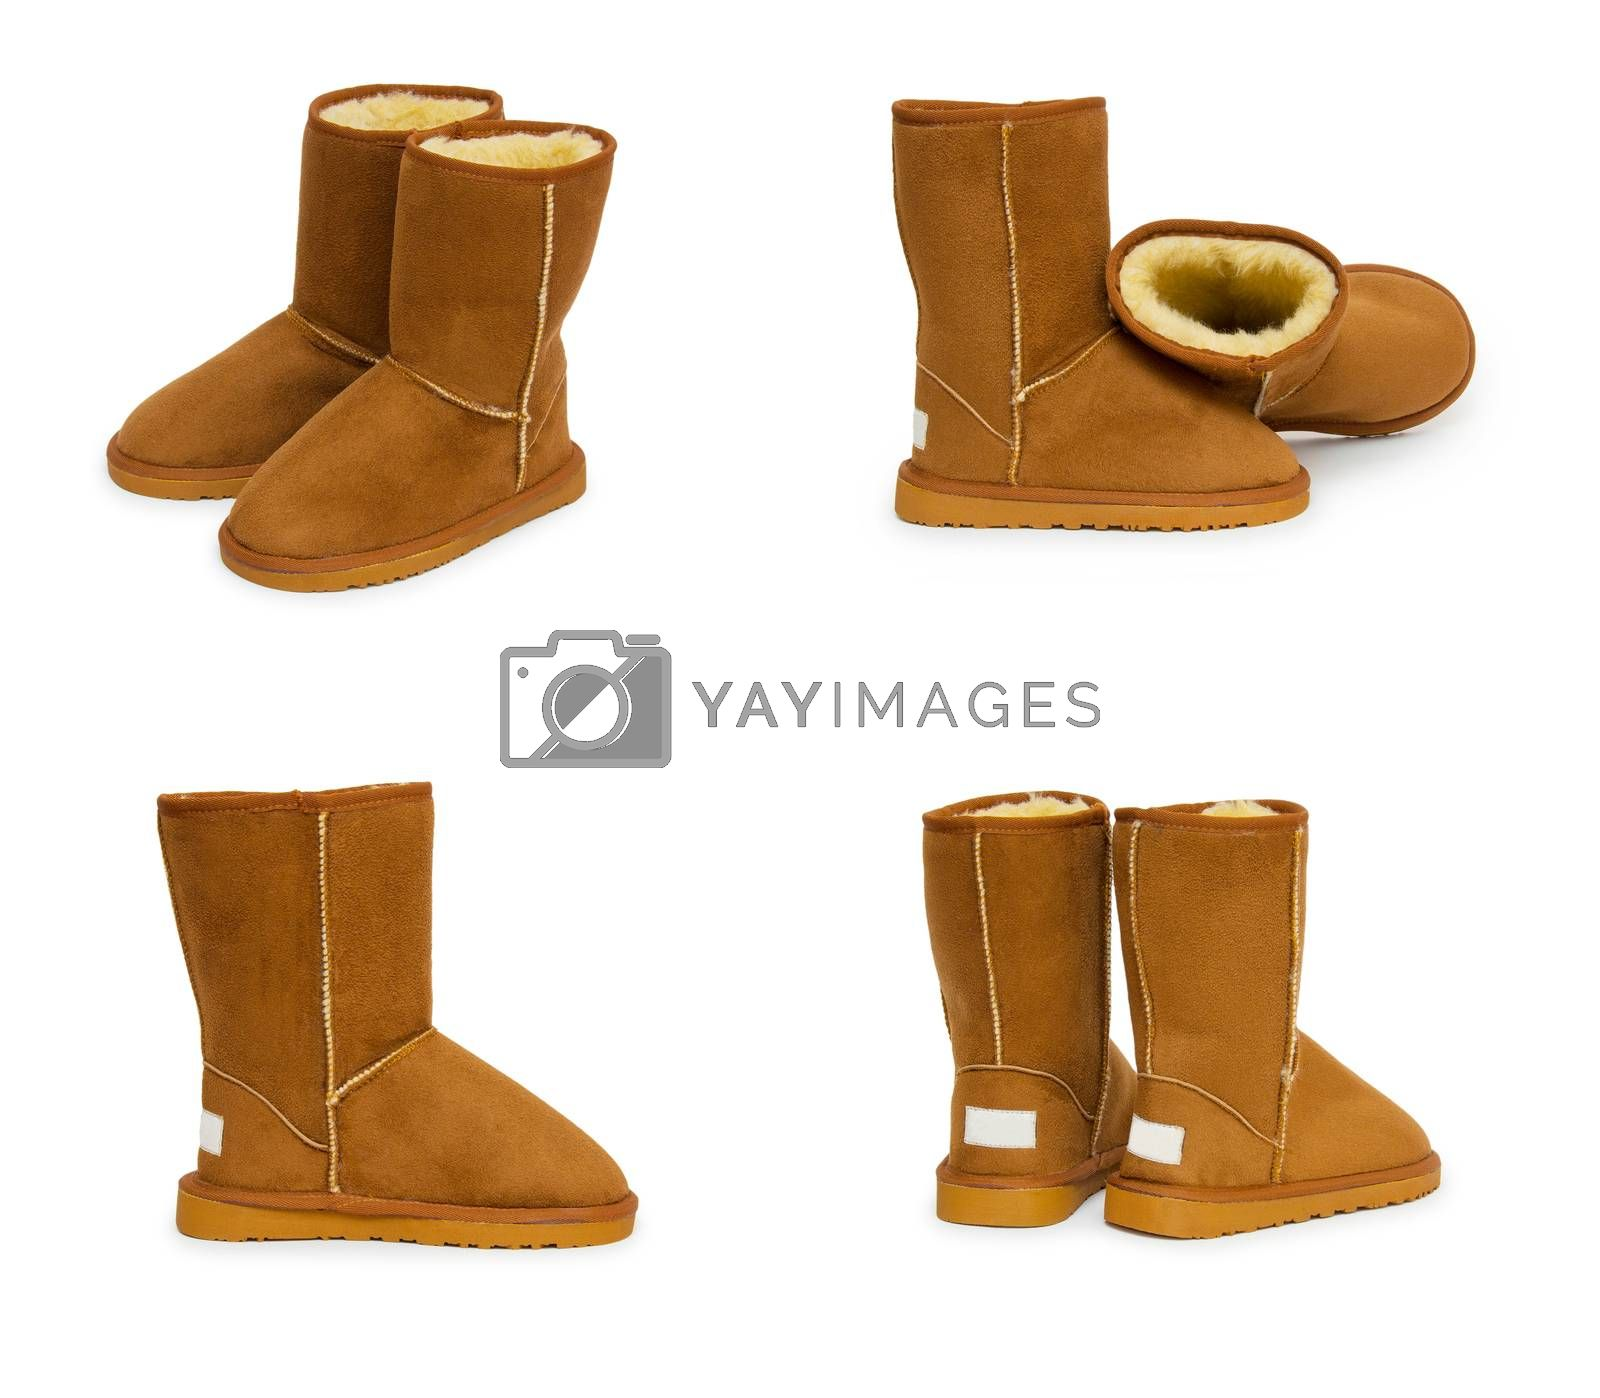 Royalty free image of Fashion winter boots by cocoo